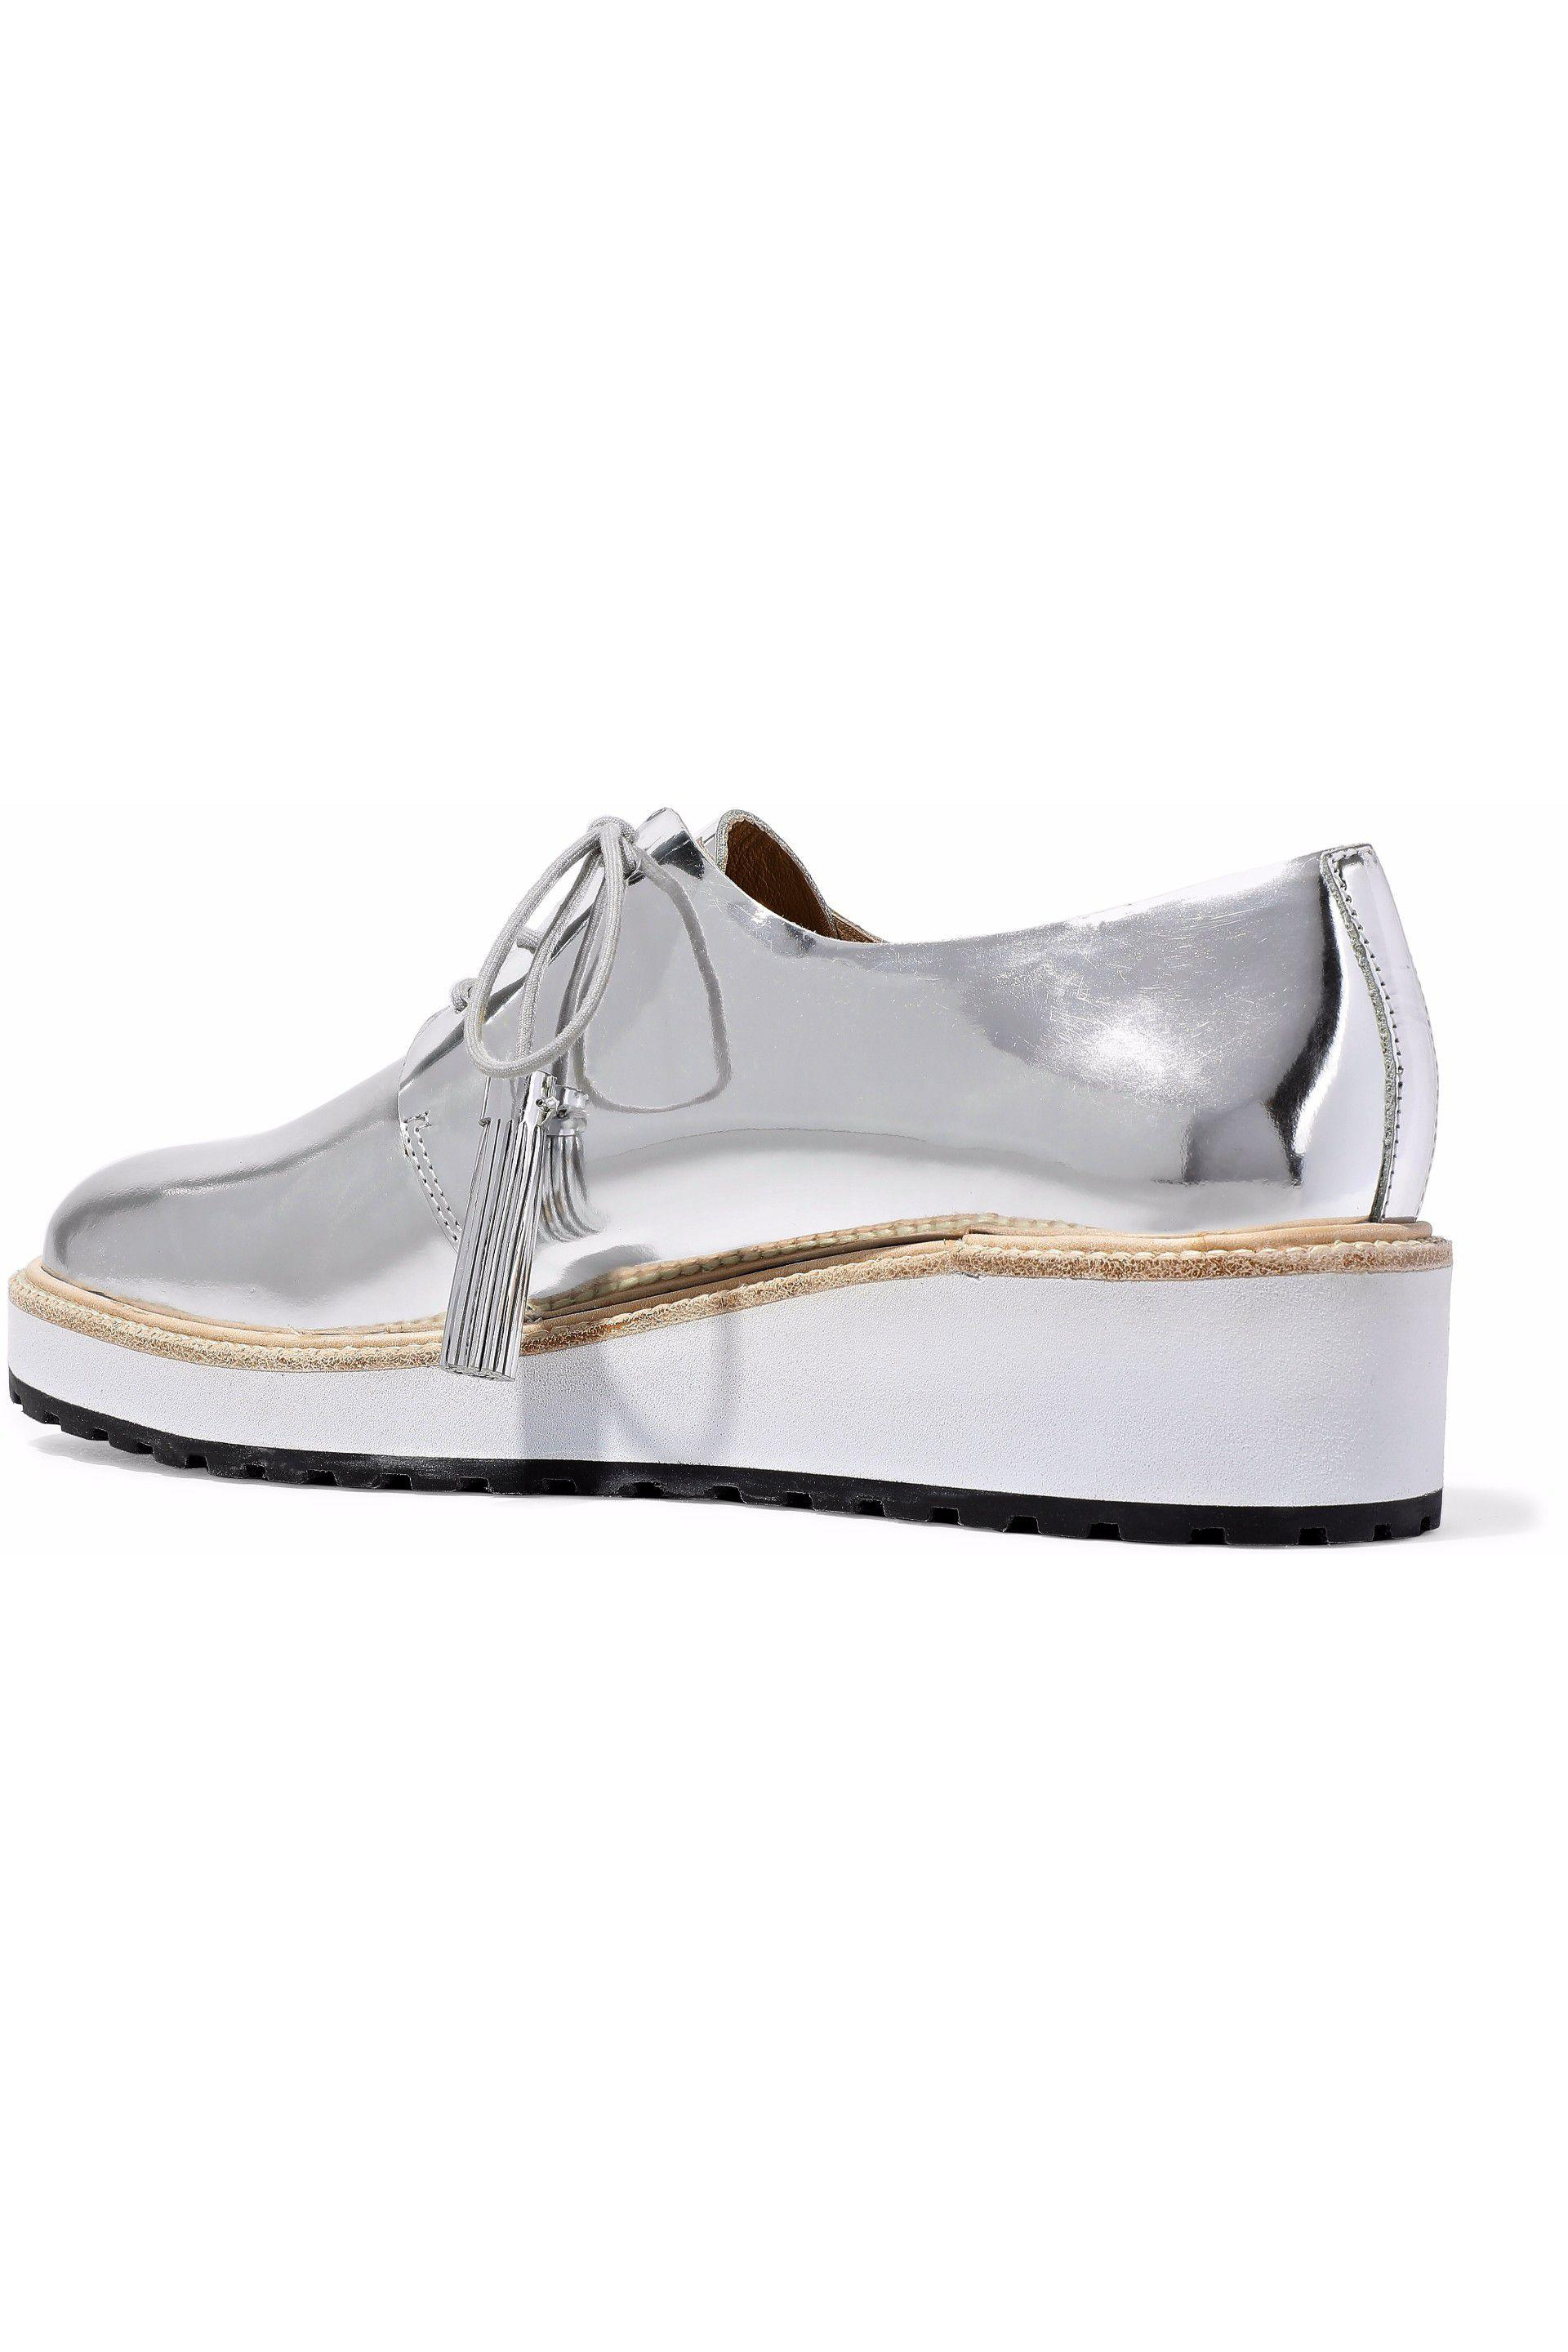 9a84dff259c Loeffler Randall Callie Mirrored-leather Wedge Brogues in Metallic ...